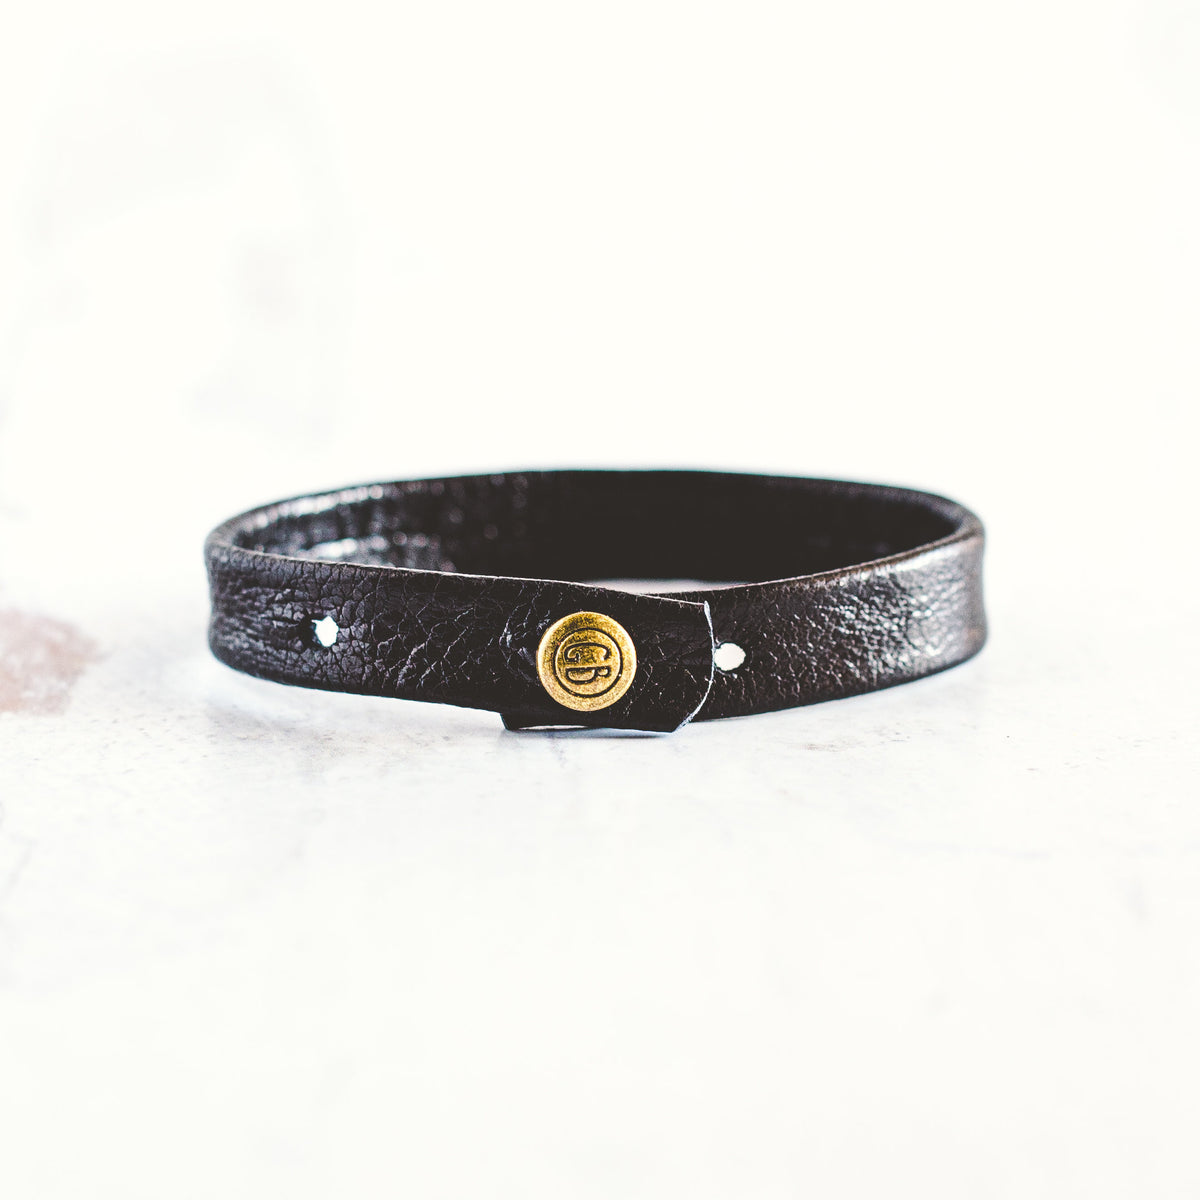 Mana Bracelet - Antique Brass